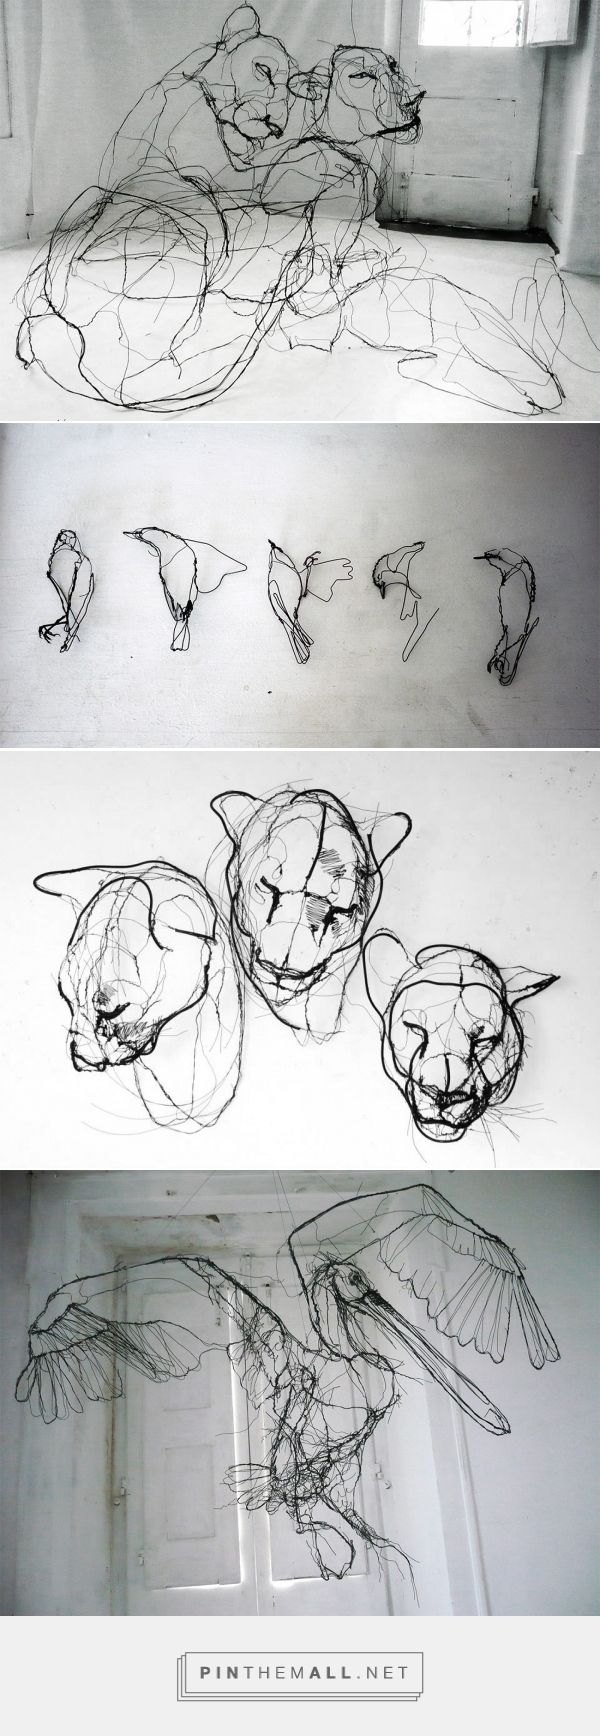 Wire Animal Sculptures that Look Like Scribbled Pencil Drawings by David Oliveira   Colossal - created on 2015-10-13 17:05:32